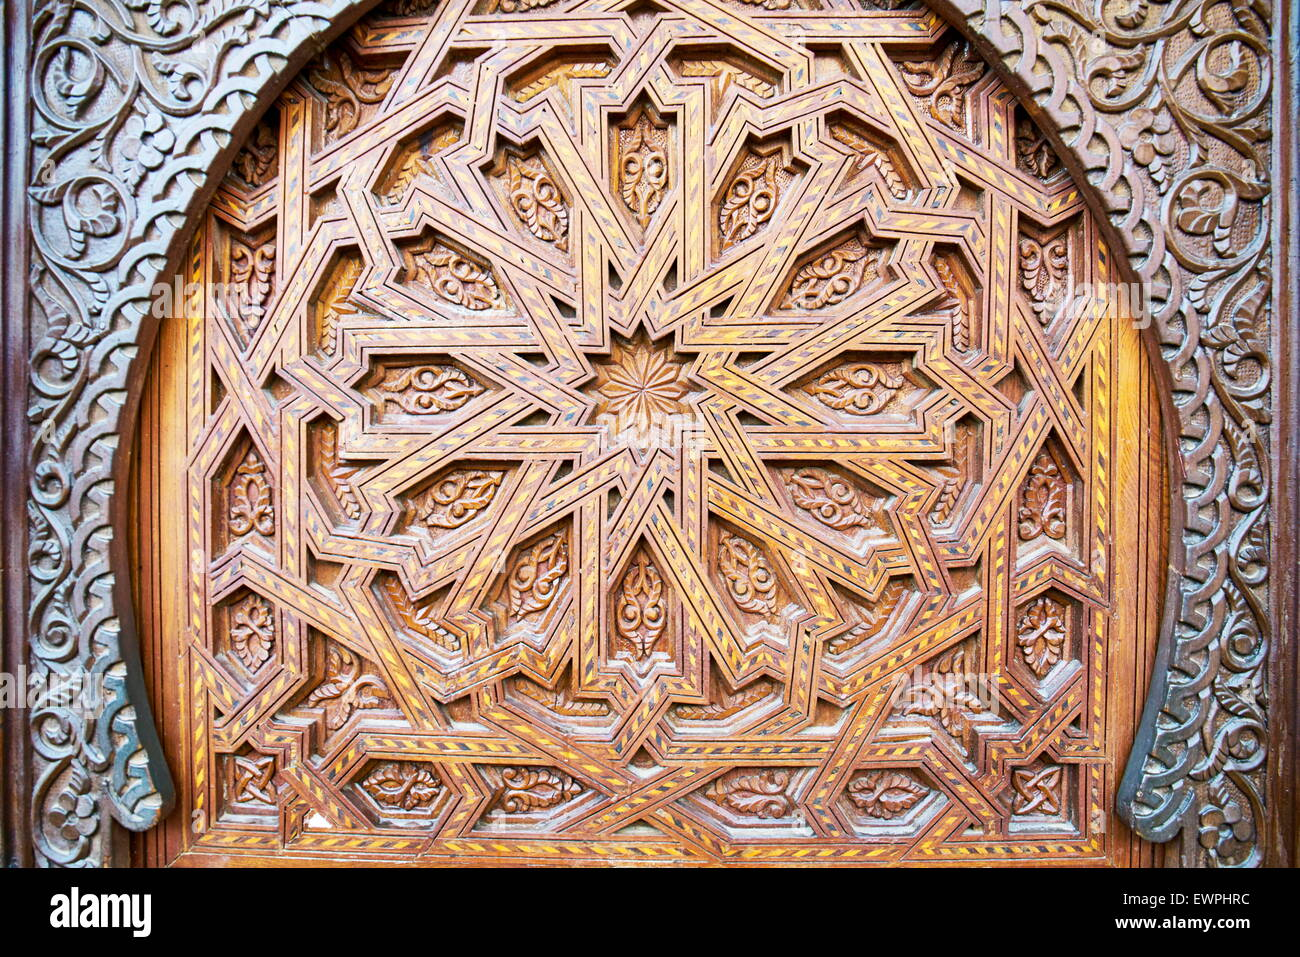 Detail of decorative door, Morocco, Africa - Stock Image